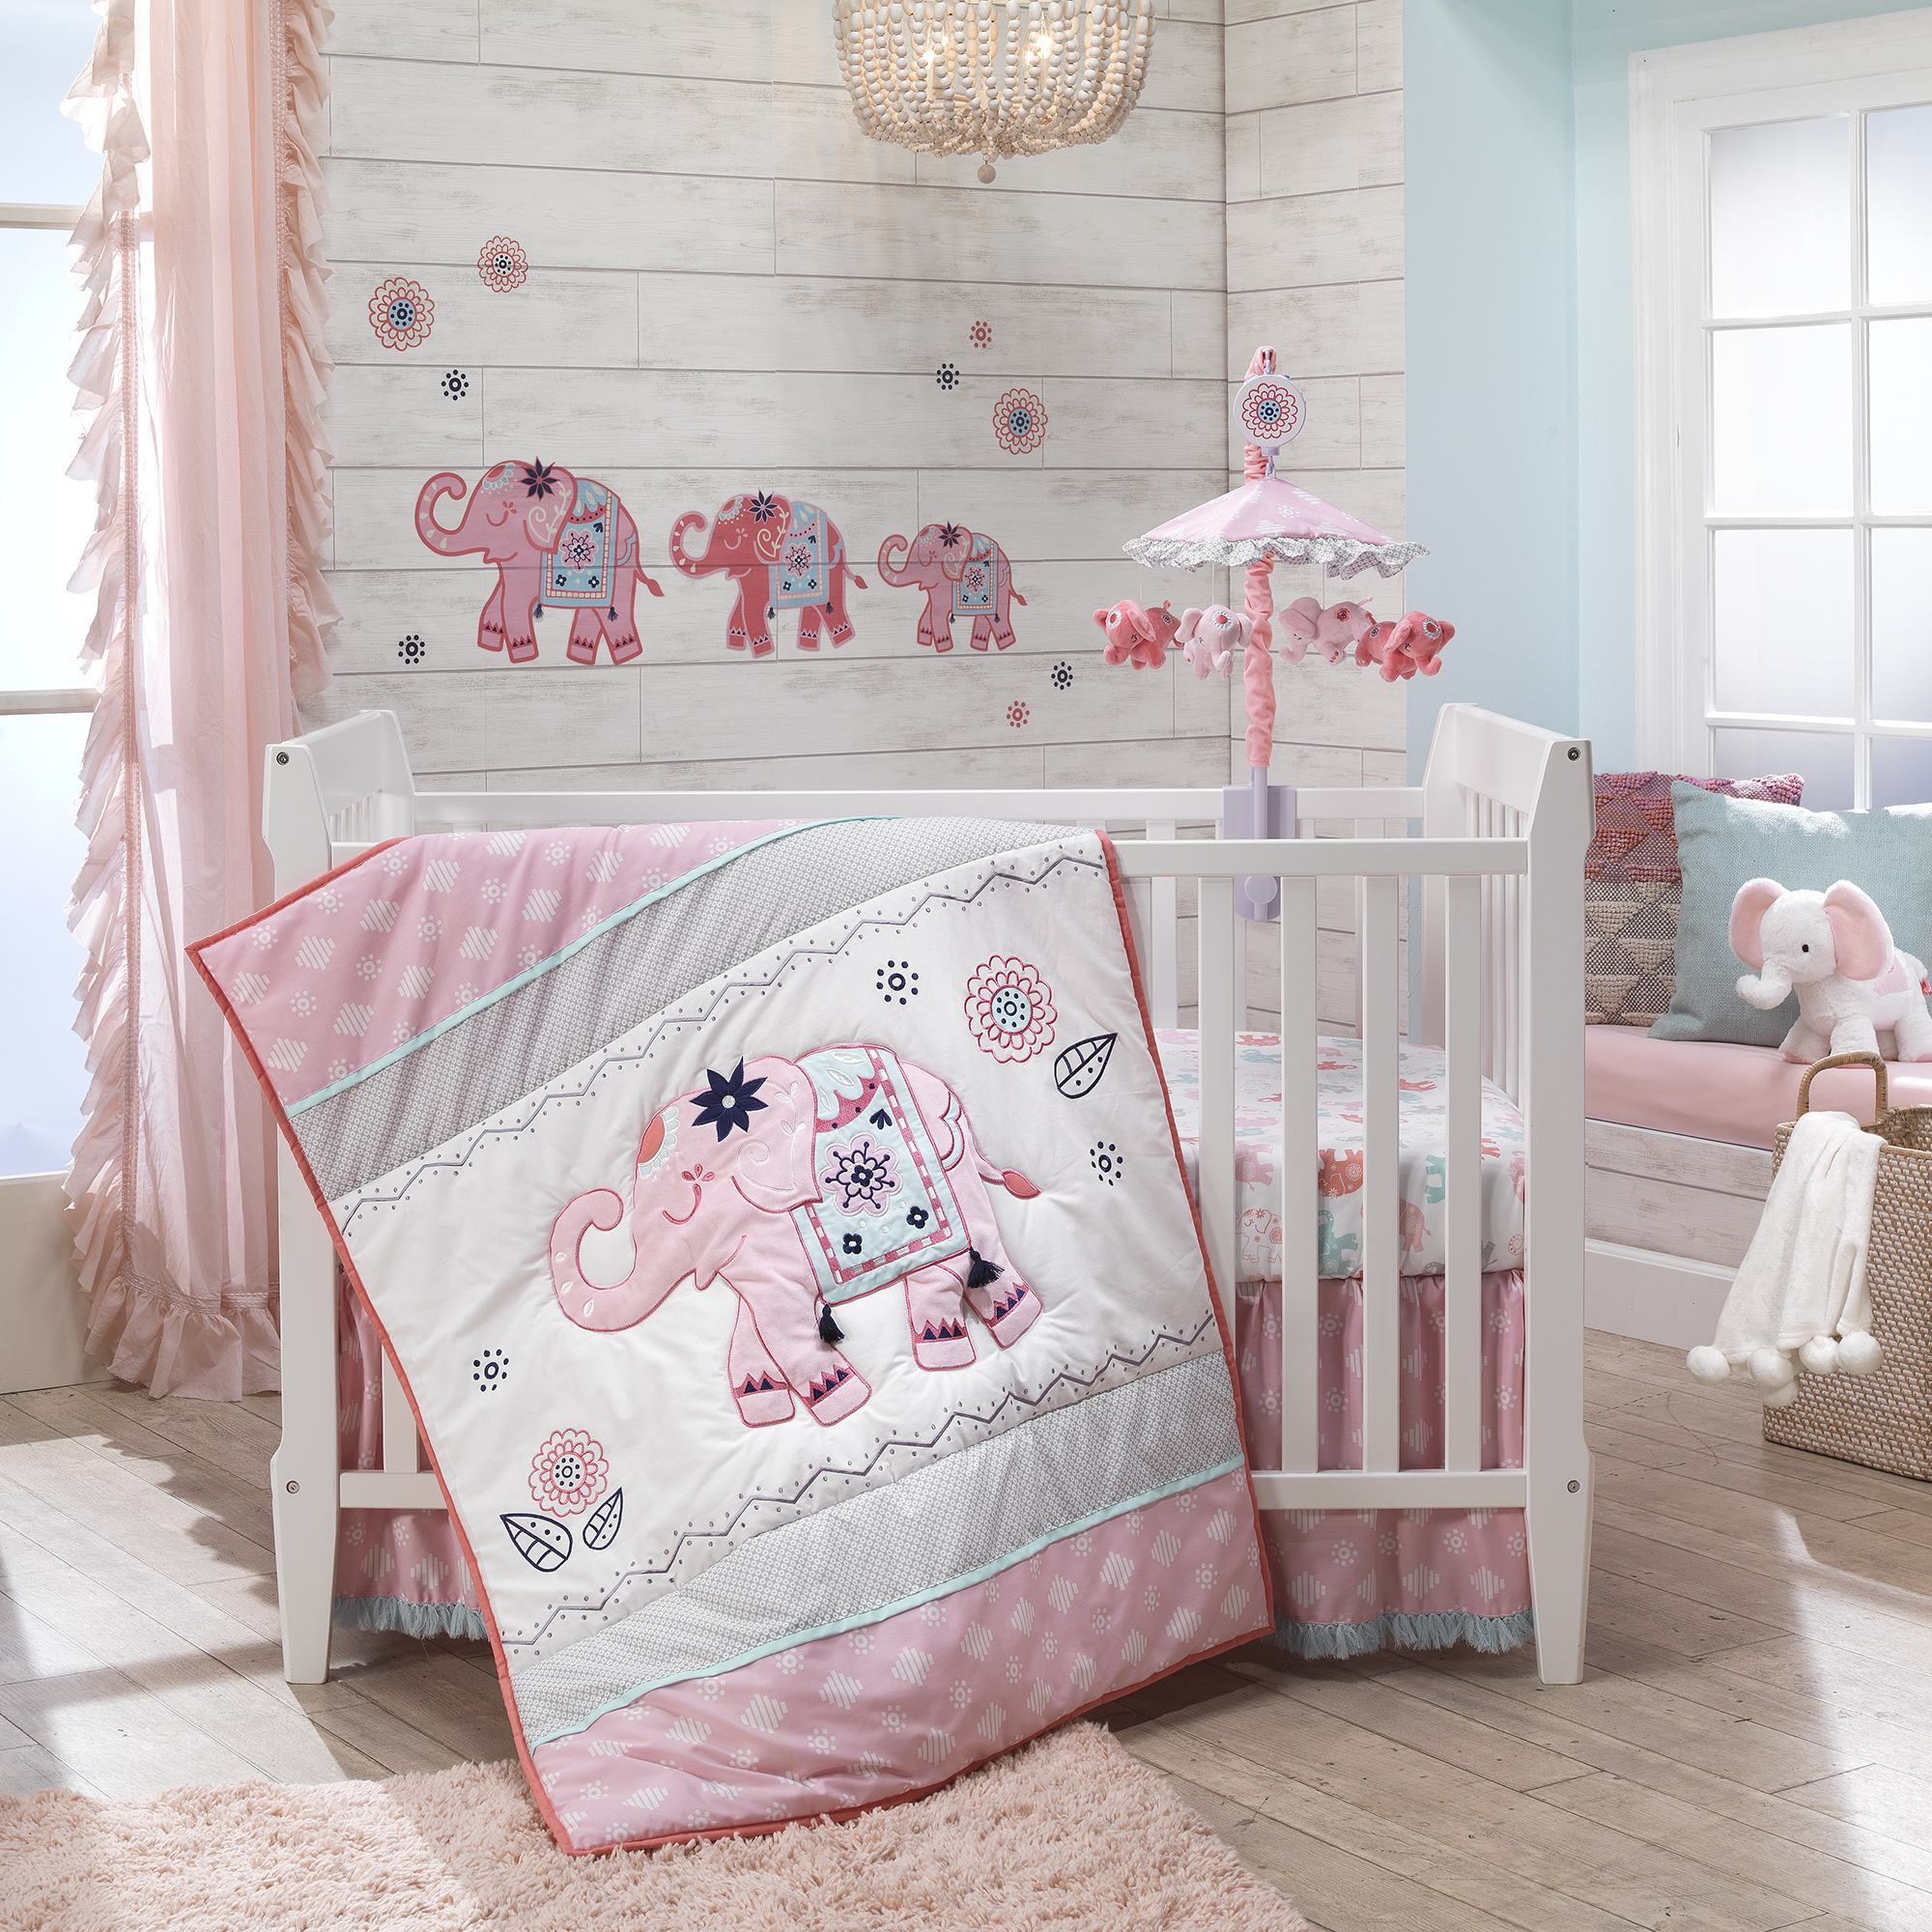 Details about Lambs & Ivy Boho Elephant Pink/Gray/White Nursery 5-Piece  Baby Crib Bedding Set